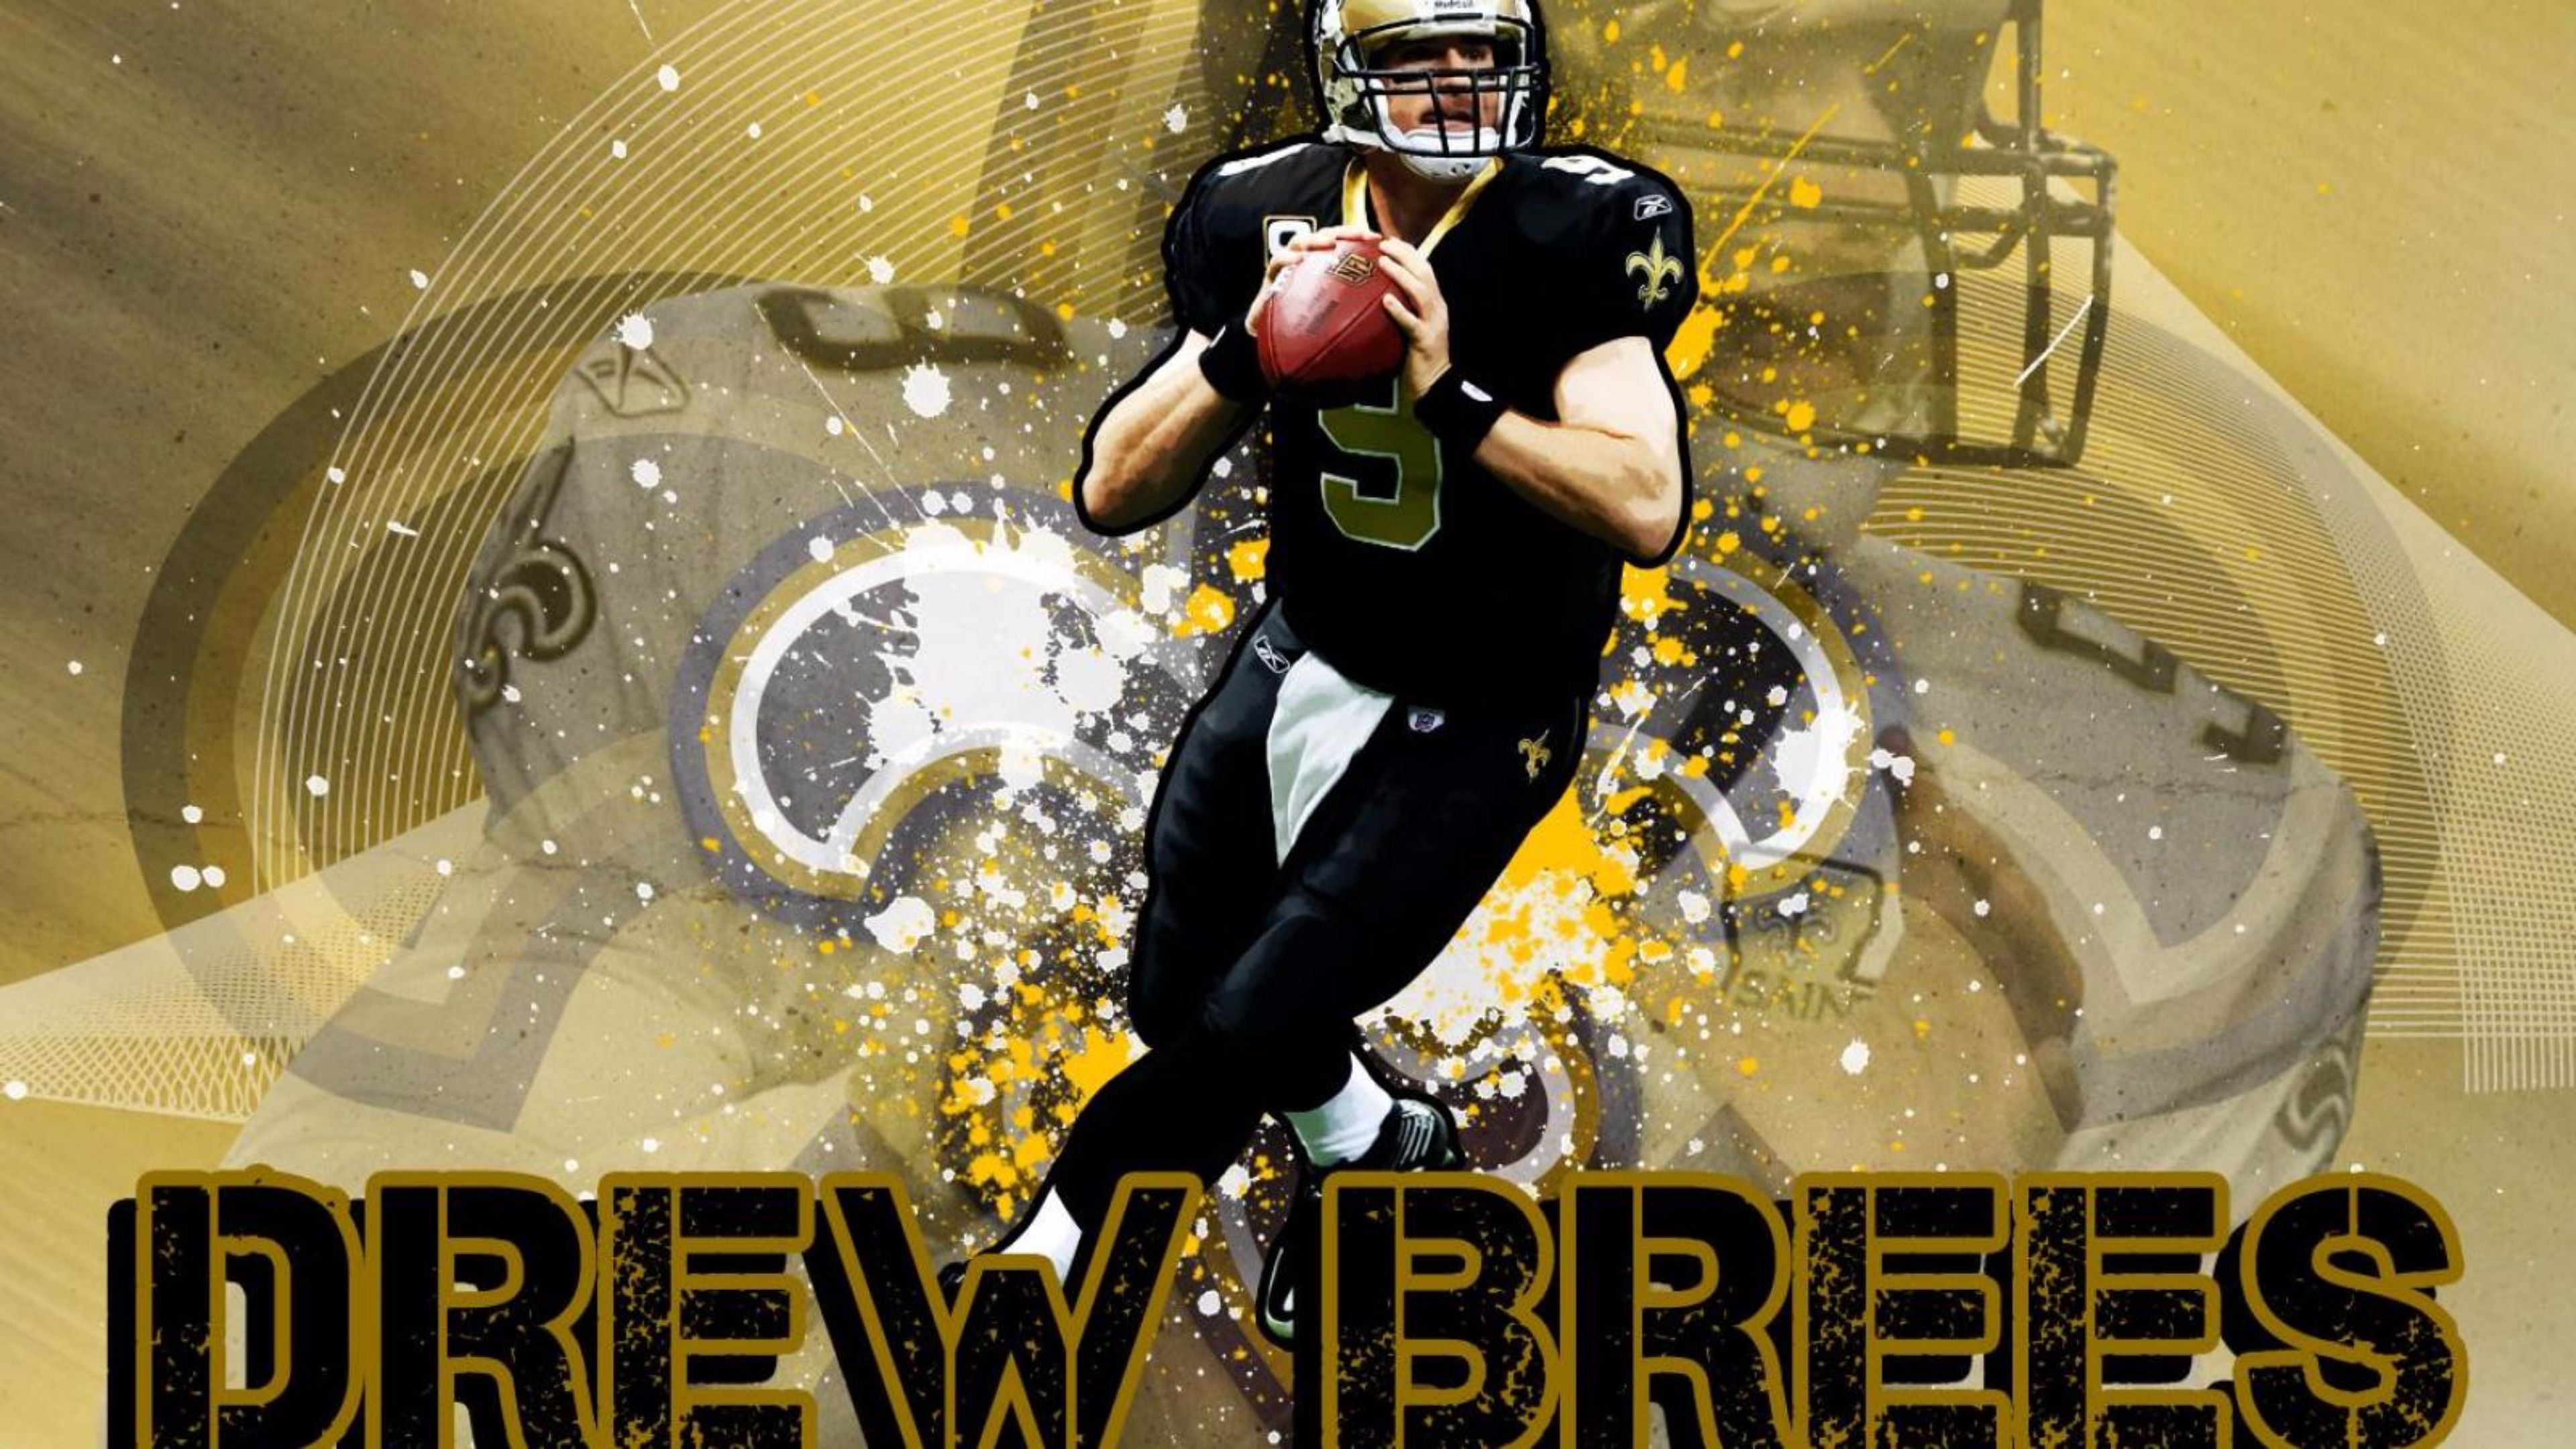 25 Drew Brees Wallpapers   Download at WallpaperBro 3840x2160